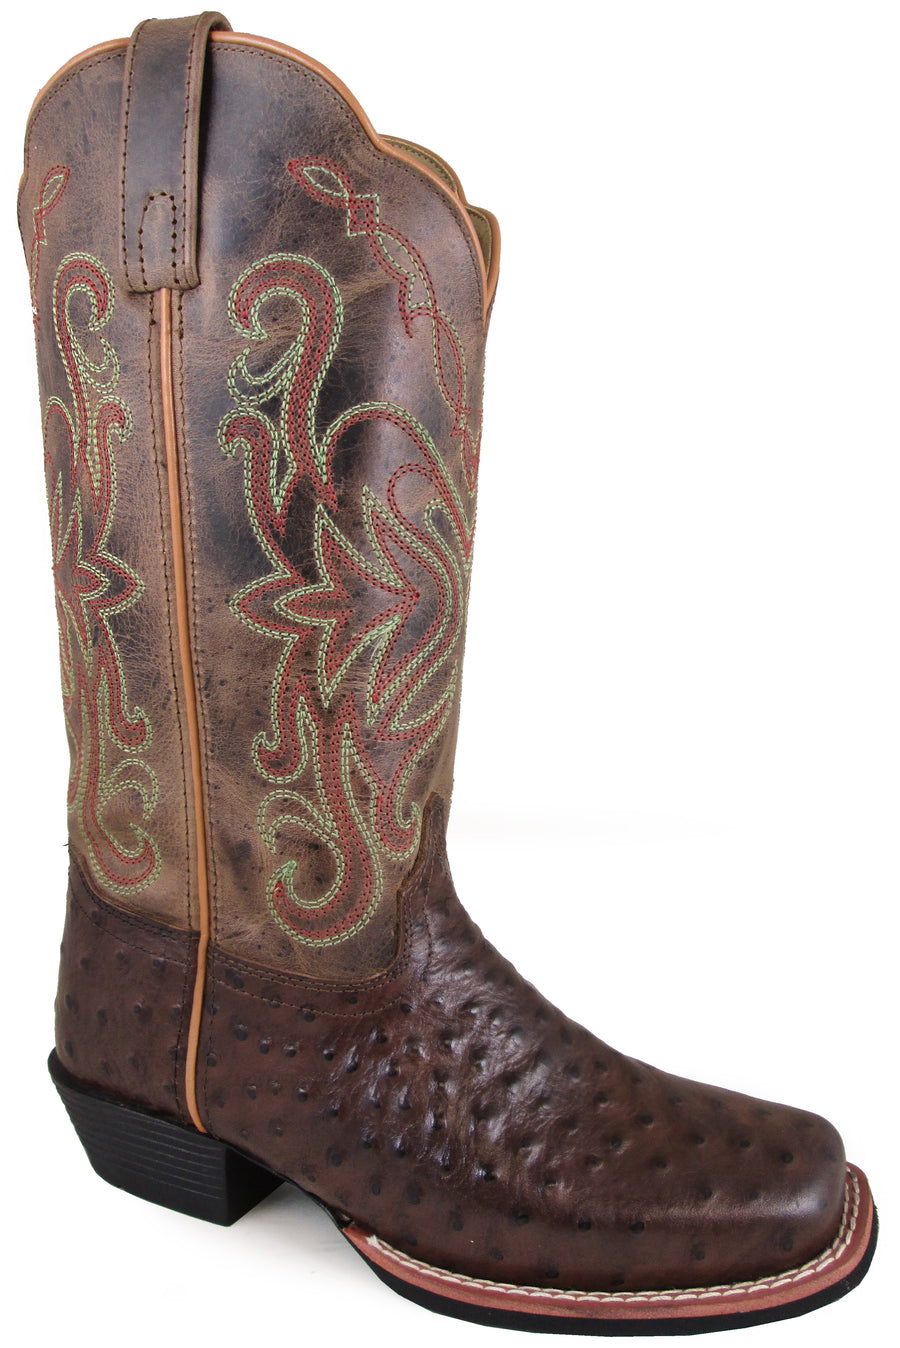 Smoky Mountain Women's Belle Pull On Distressed Square Toe Tobacco/Brown Crackle Boots